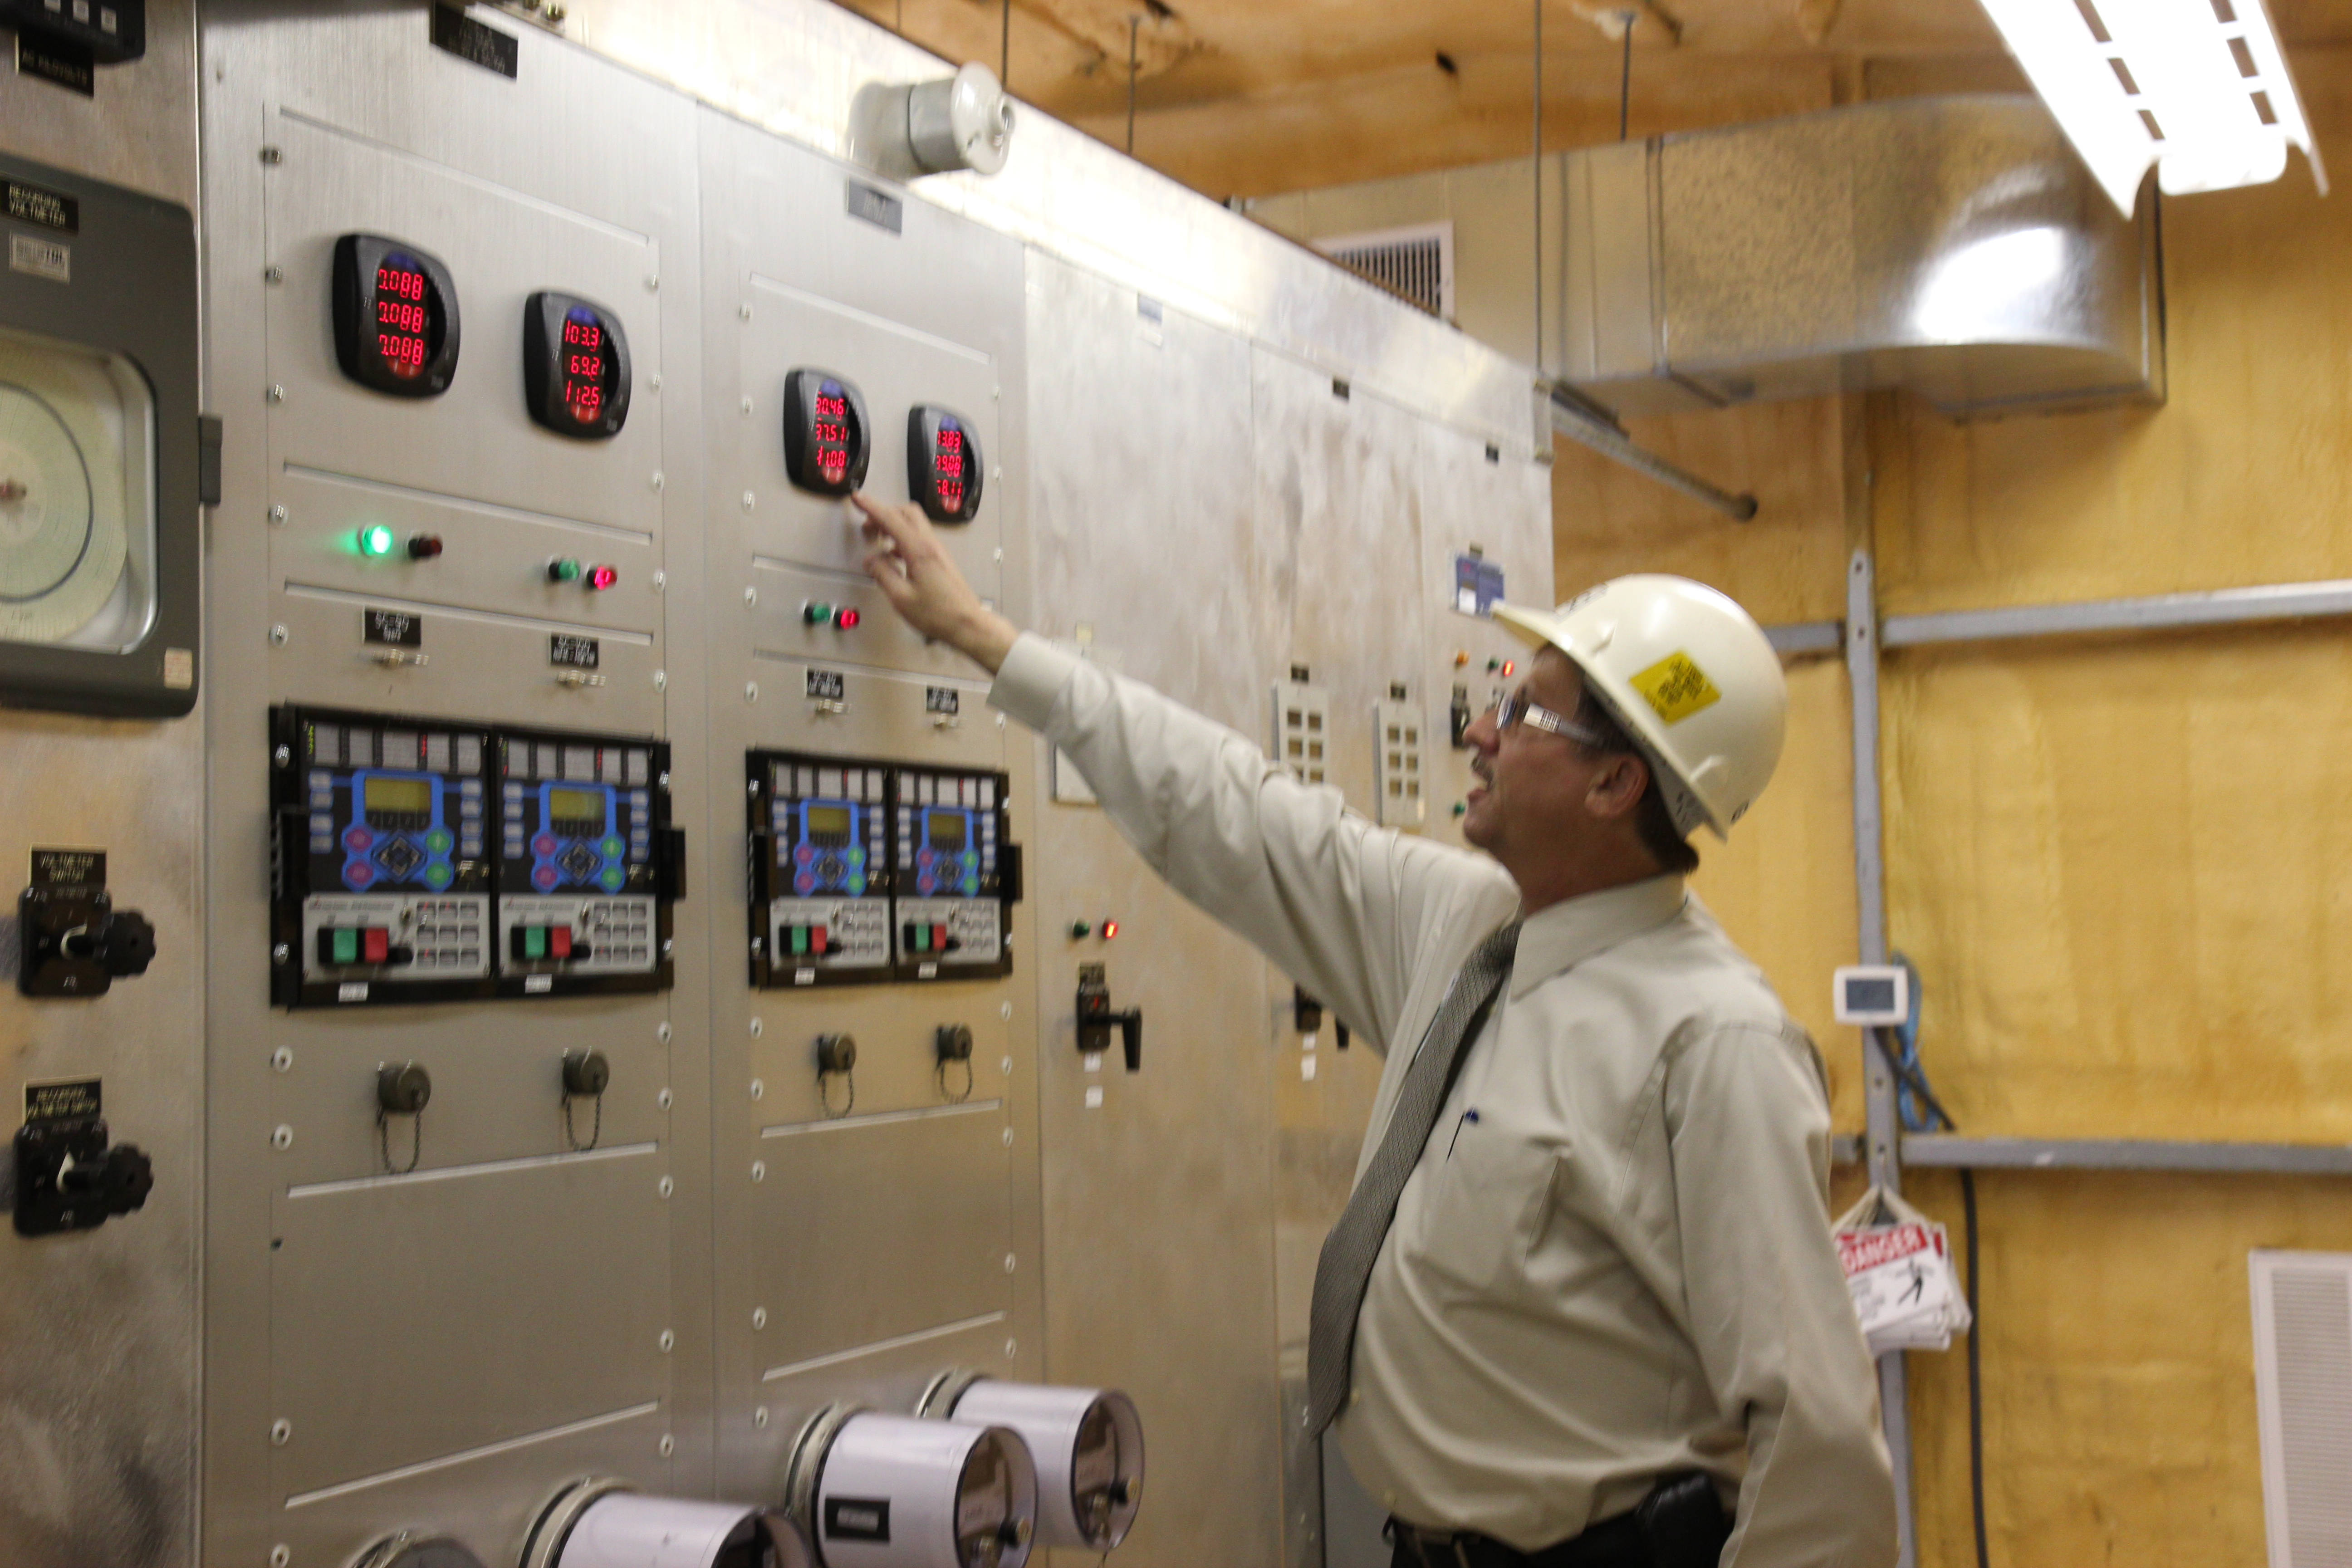 Gary reviewing SCADA system in Schulenburg Substation